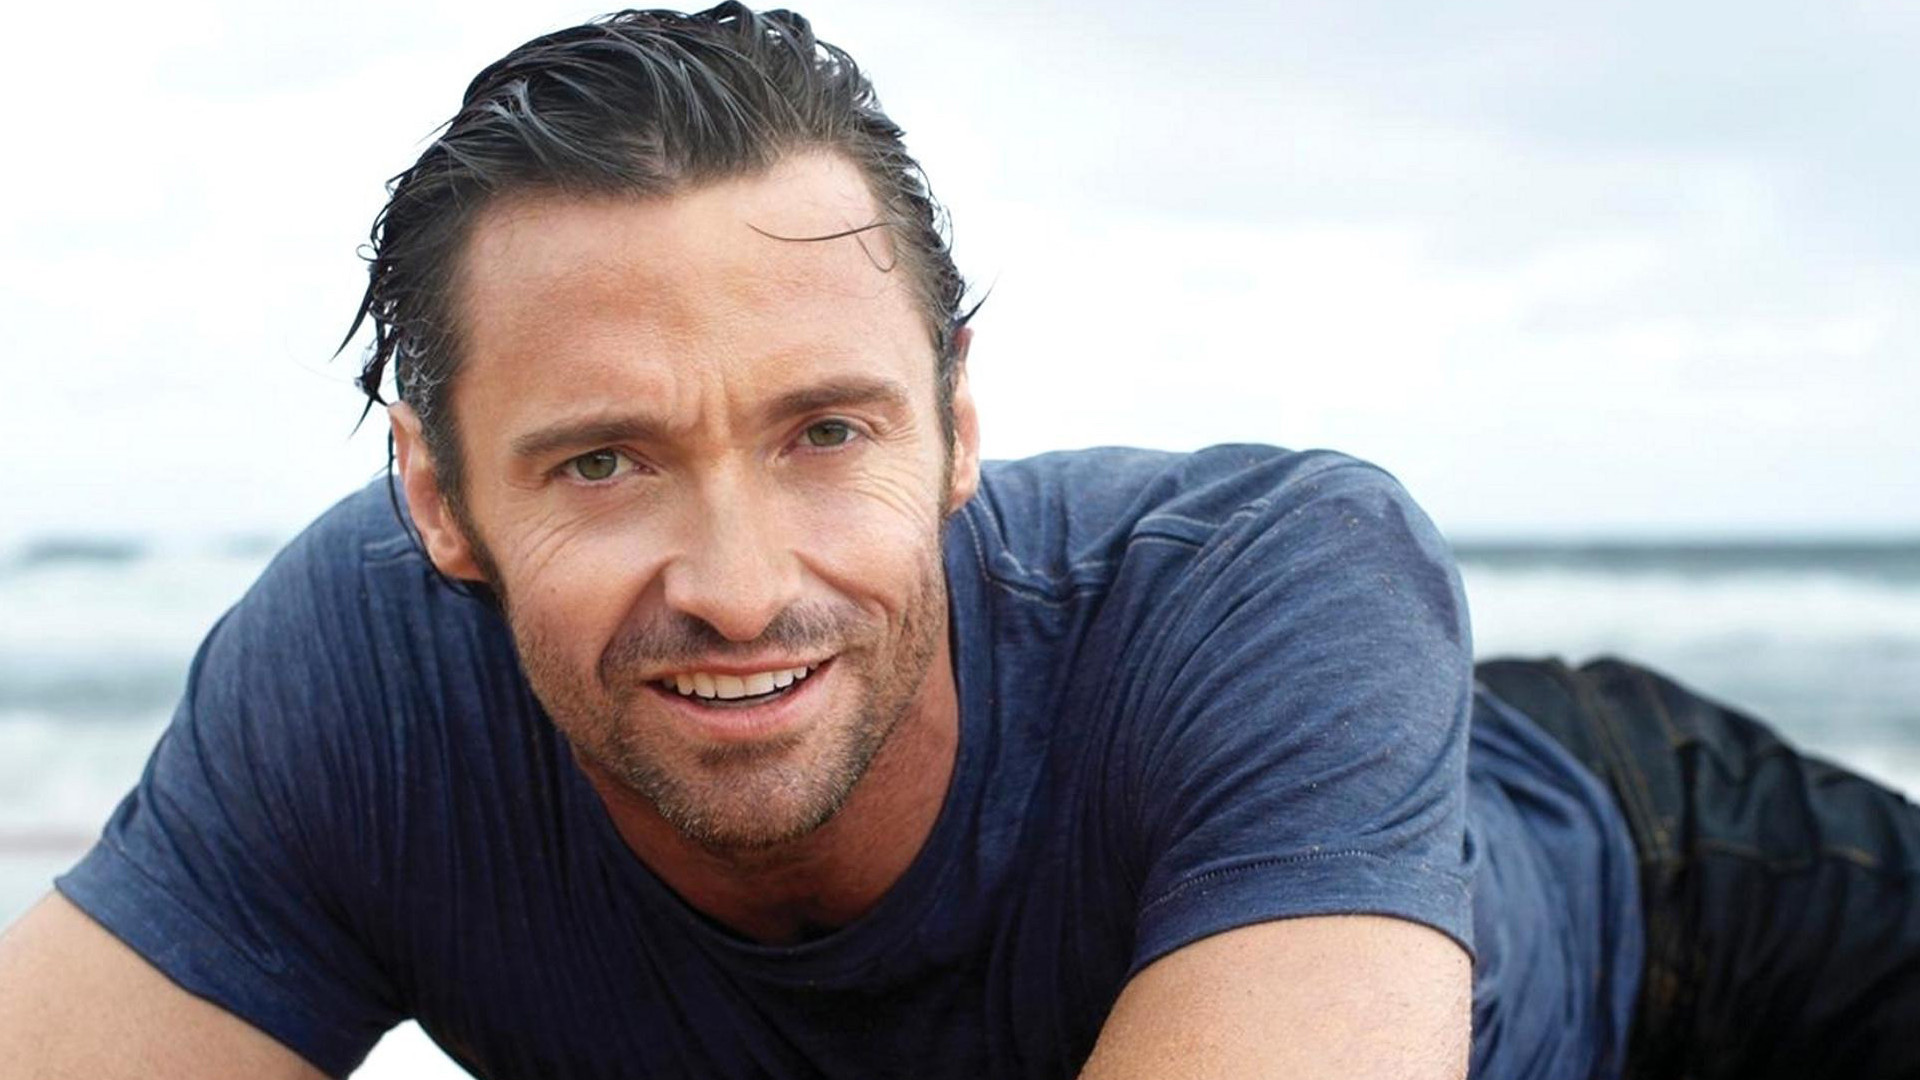 888193-download-hugh-jackman-wallpaper-1920x1080-ipad